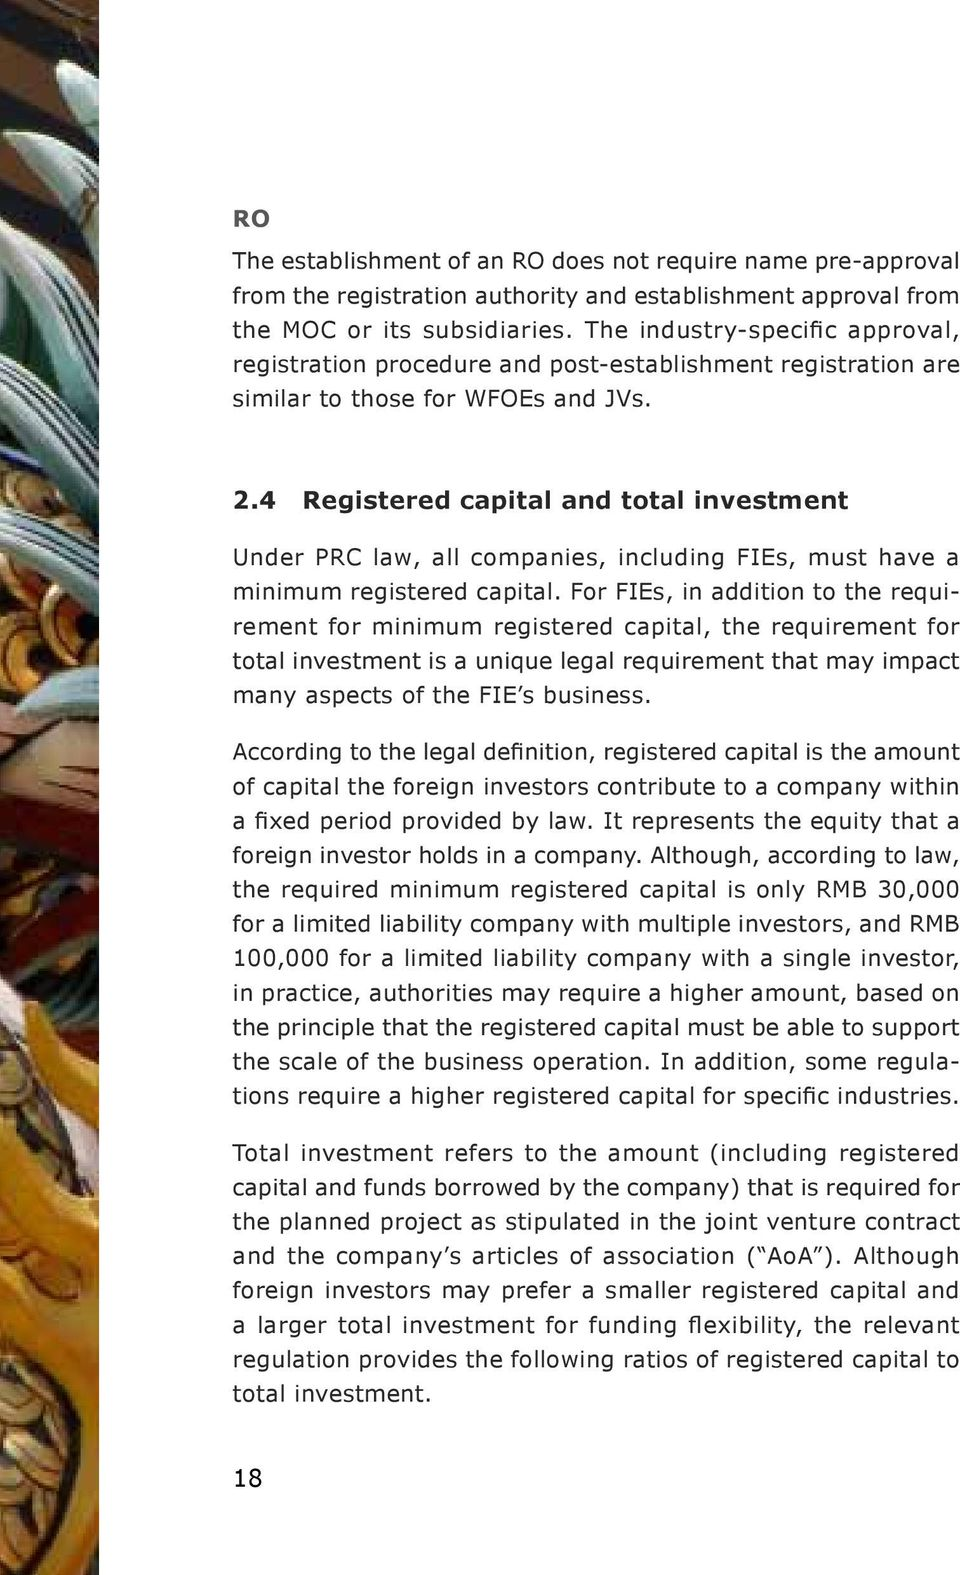 4 Registered capital and total investment Under PRC law, all companies, including FIEs, must have a minimum registered capital.